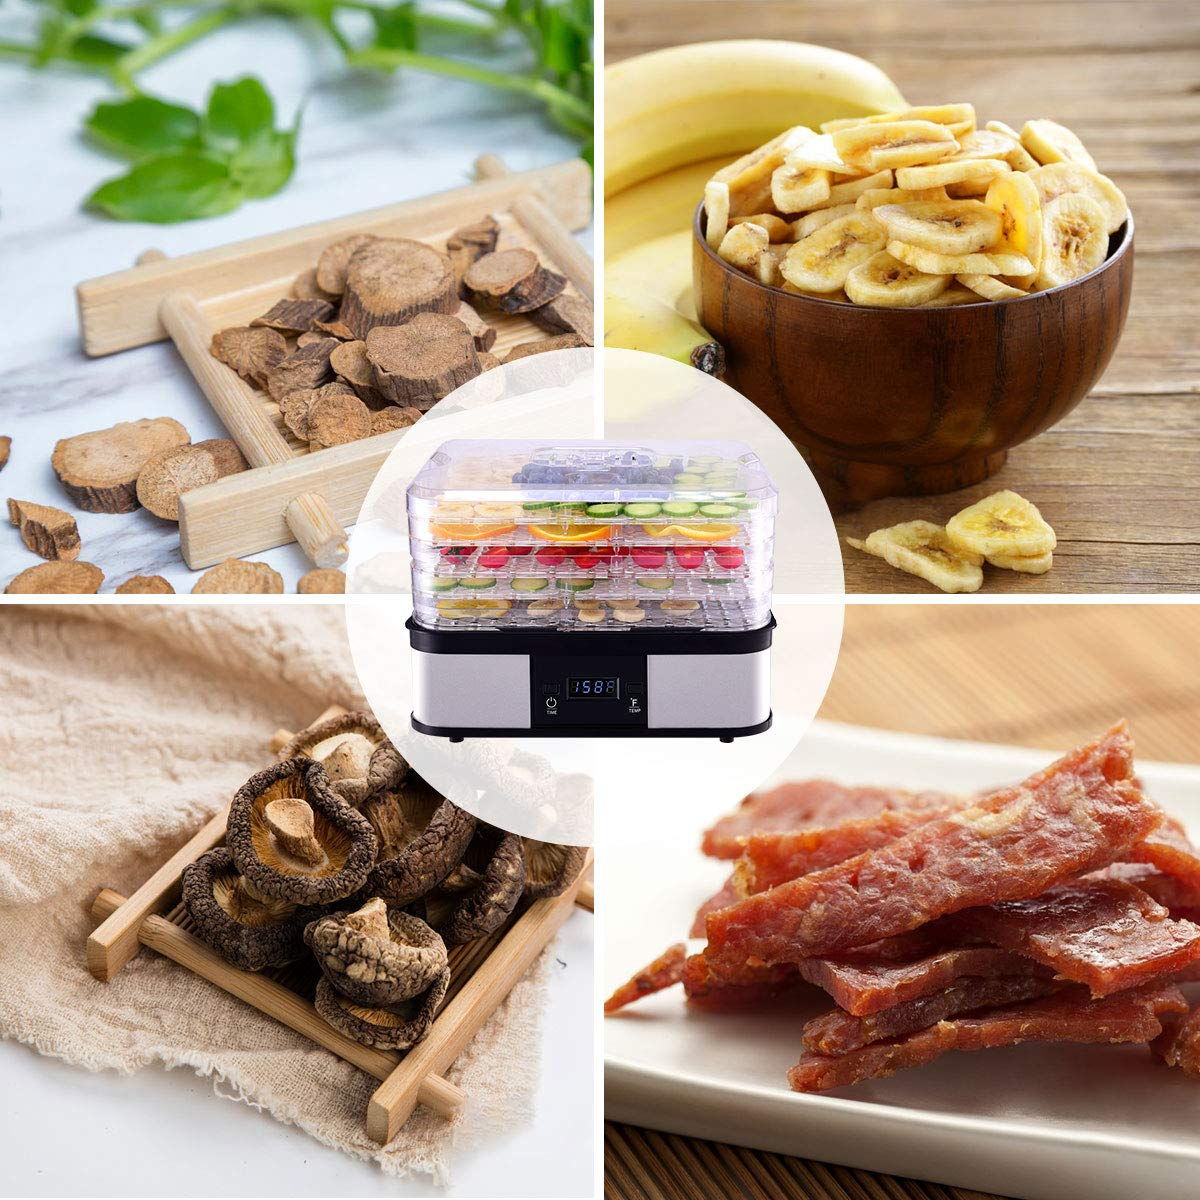 HAPPYGRILL Food Dehydrator Machine, Best Electric 5-Tier Home Food Meat Beef Jerky Fruit Vegetable Dehydrator Dryer Preserver, Professional 360 Degree Hot Air Circulation System, Easy to Clean(Black) by HAPPYGRILL (Image #4)